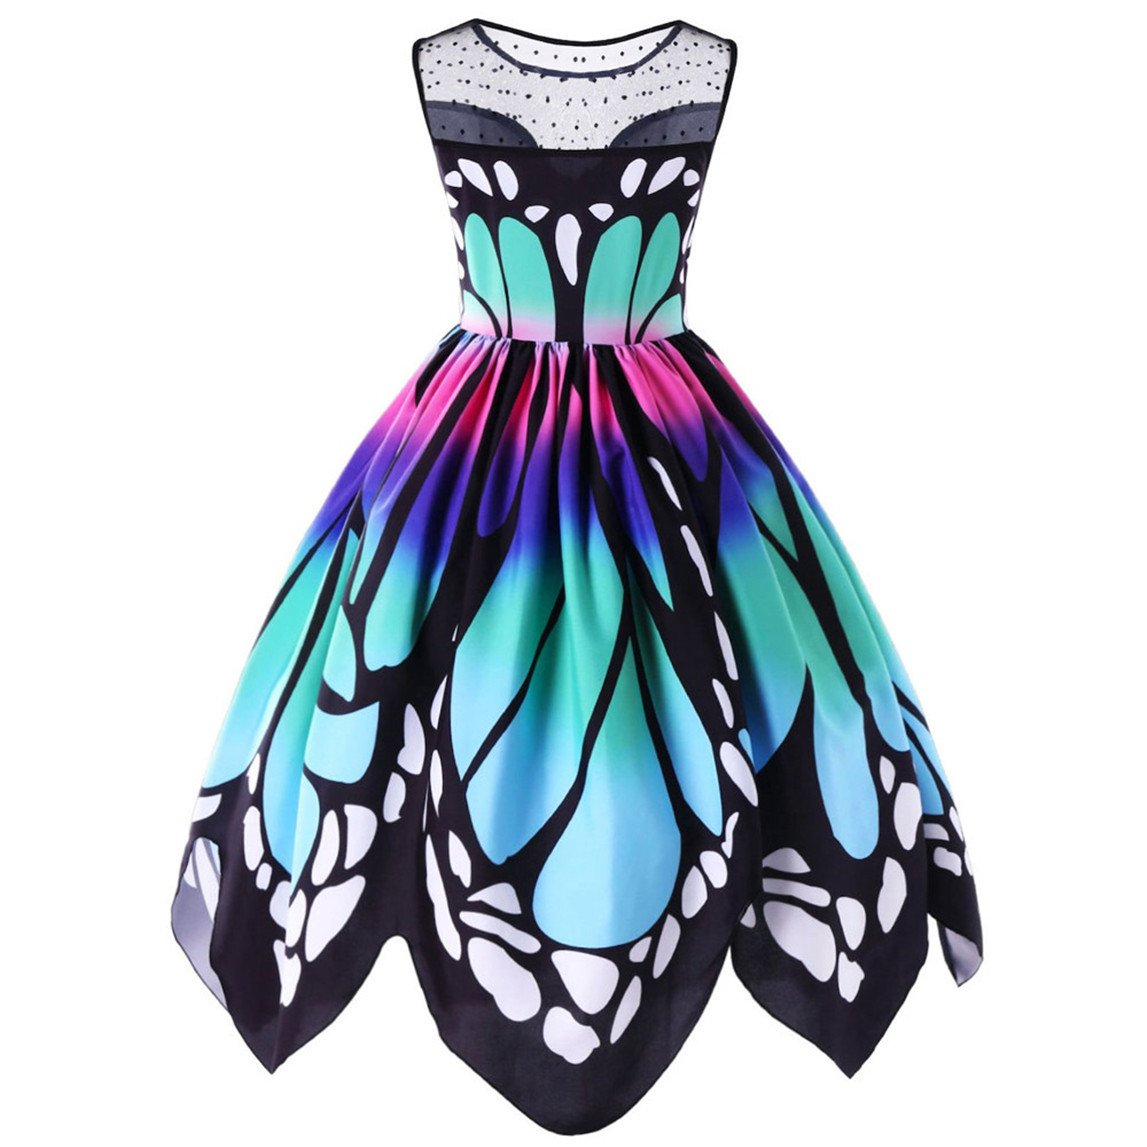 Nadition Dress Clearance !!! Womens Butterfly Printing Party Dress Vintage Swing Lace Dress(S-5XL) (Multicolor, 2XL) by Nadition